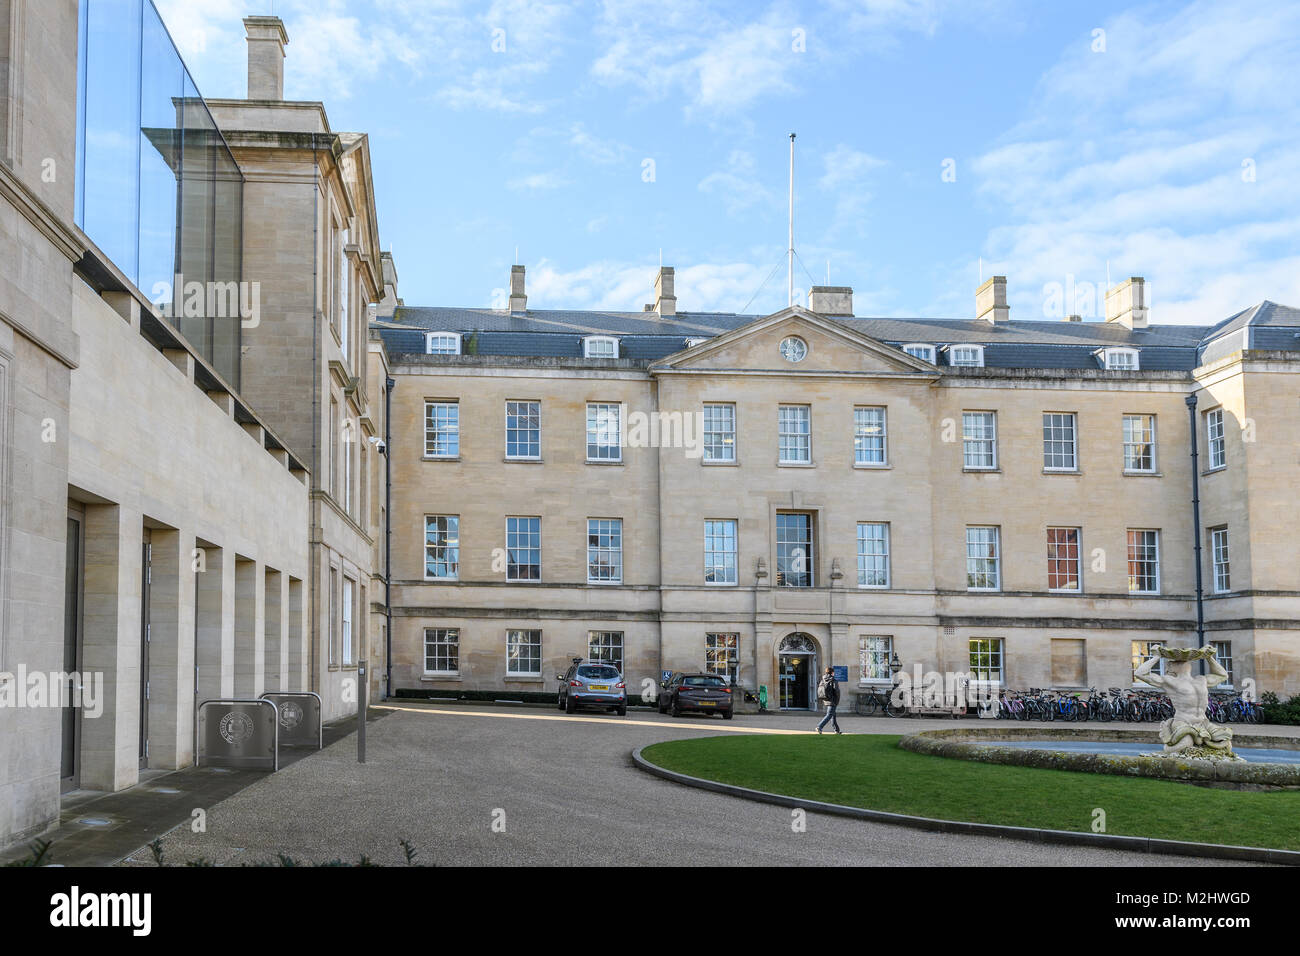 The humanities building and the primary care building in the Radcliffe Observatory Quarter (ROQ)  at the university - Stock Image